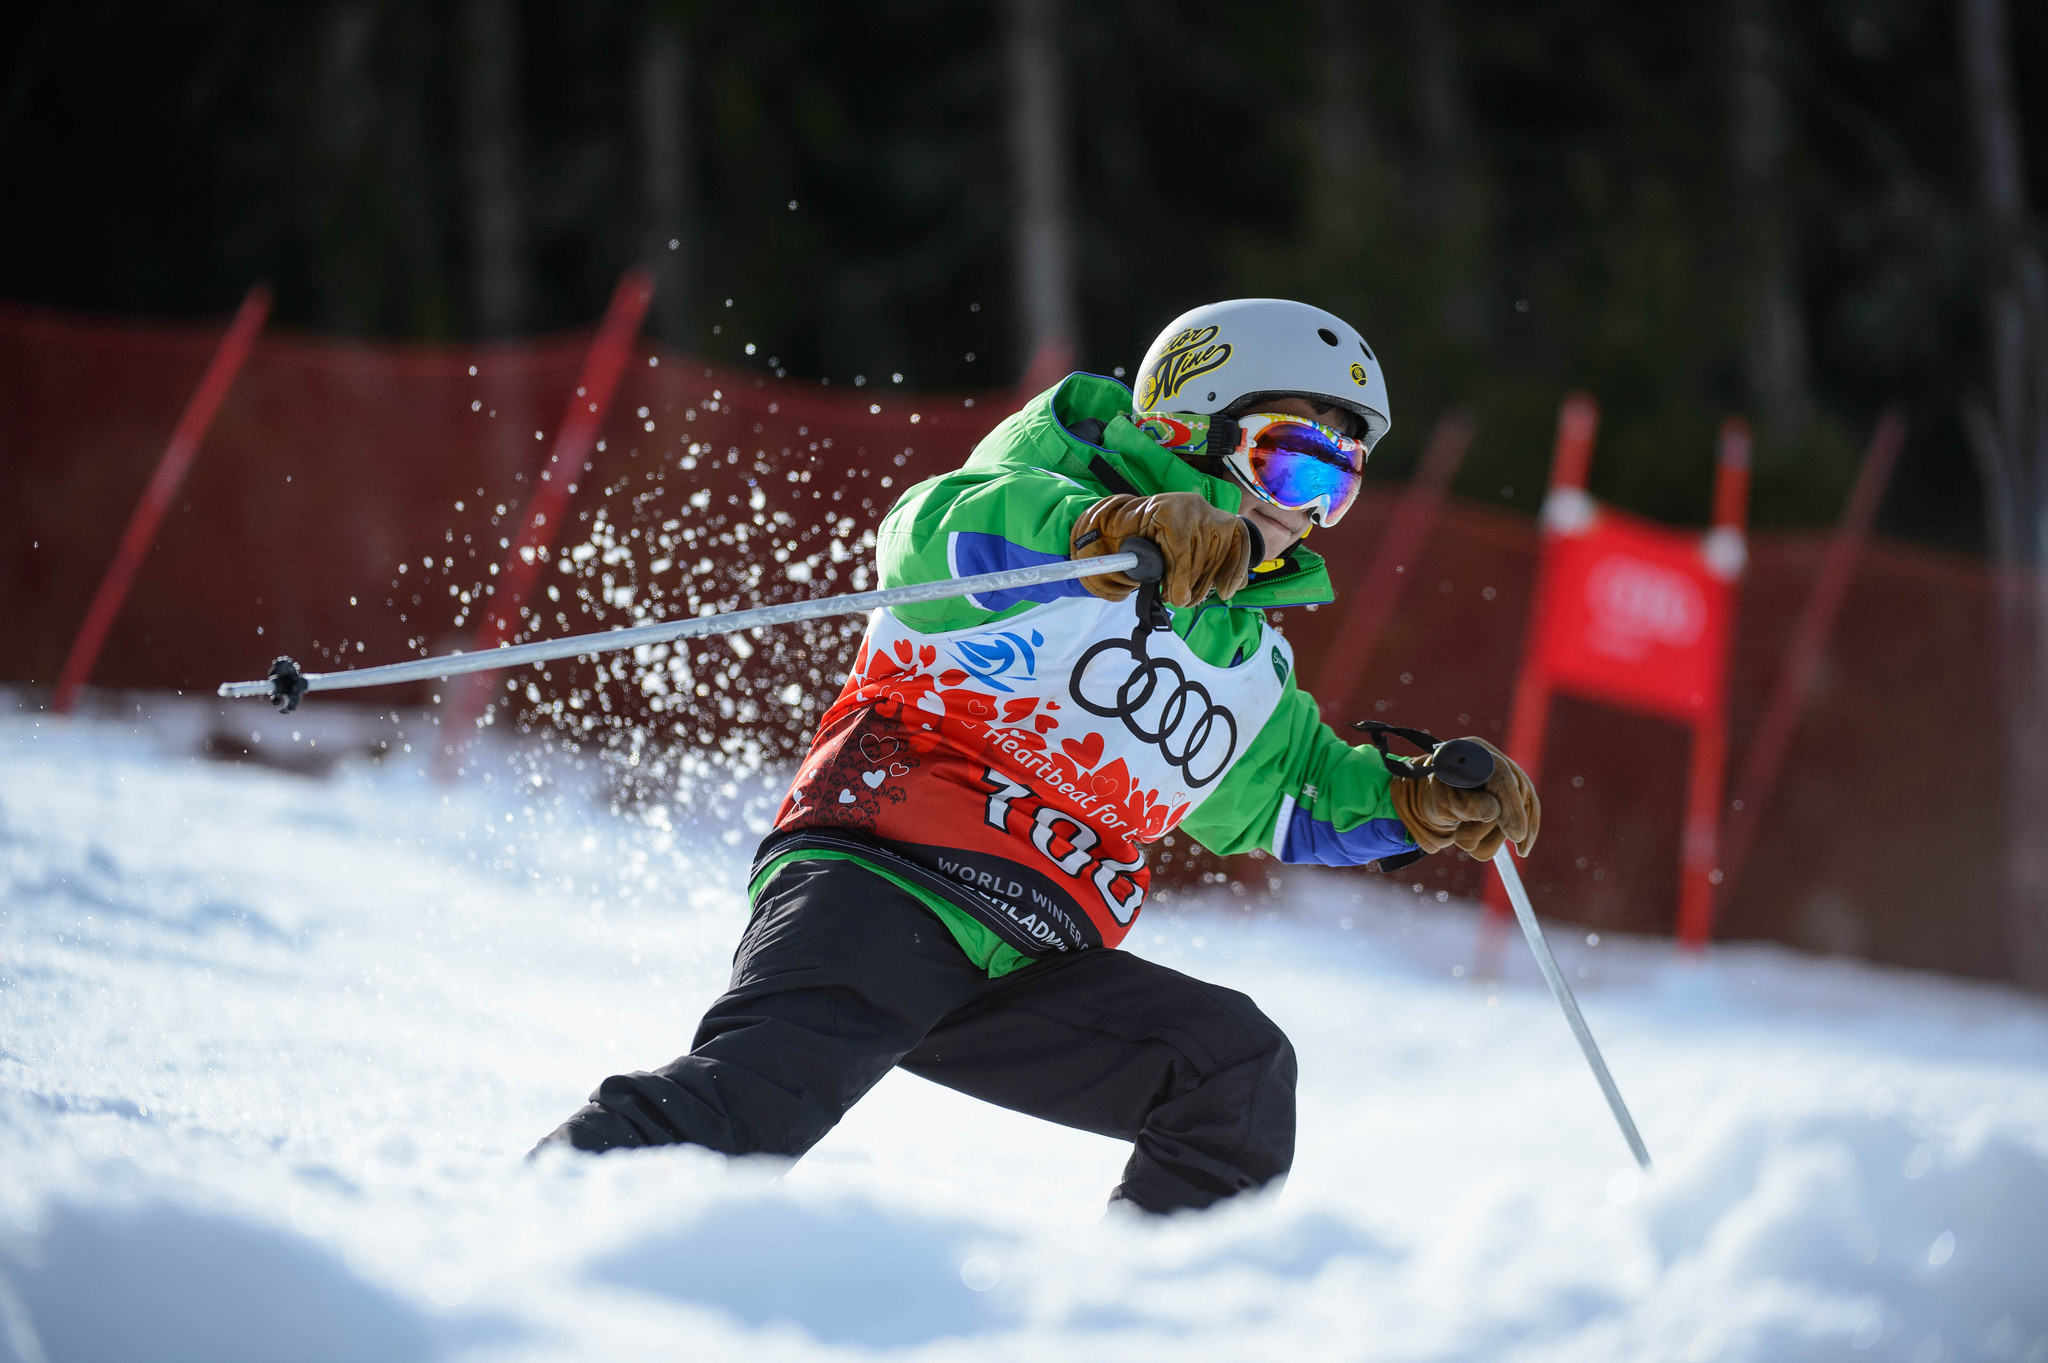 Sweden has been named as the host of the Special Olympics World Winter Games in 2021 ©Special Olympics